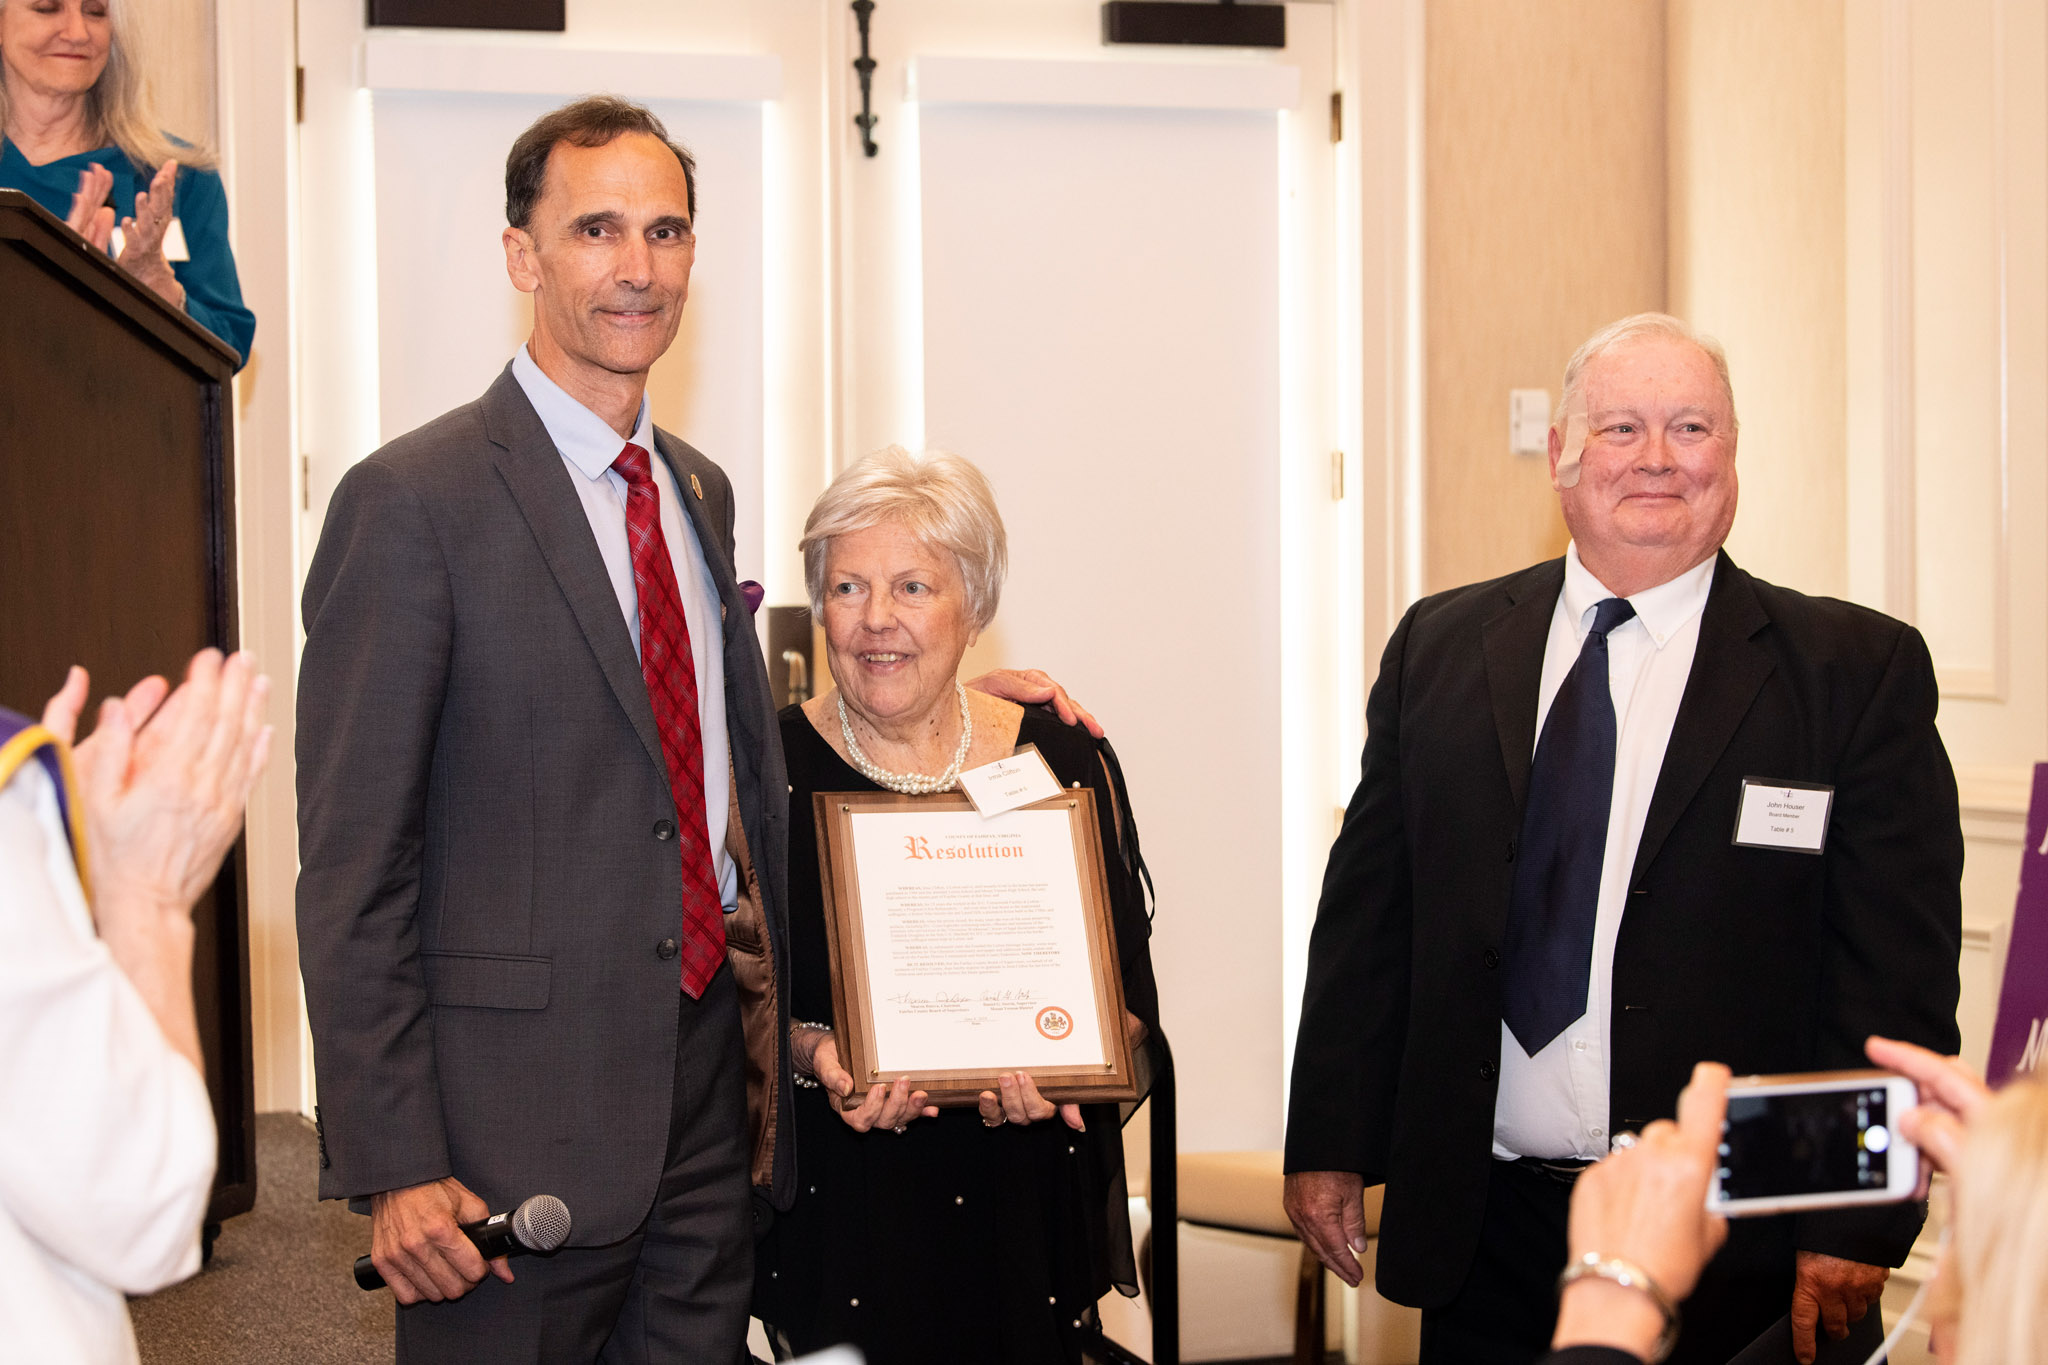 03-Supervisor-Dan-Storck-presenting-Fairfax-County-acknowledgement-to-Irma